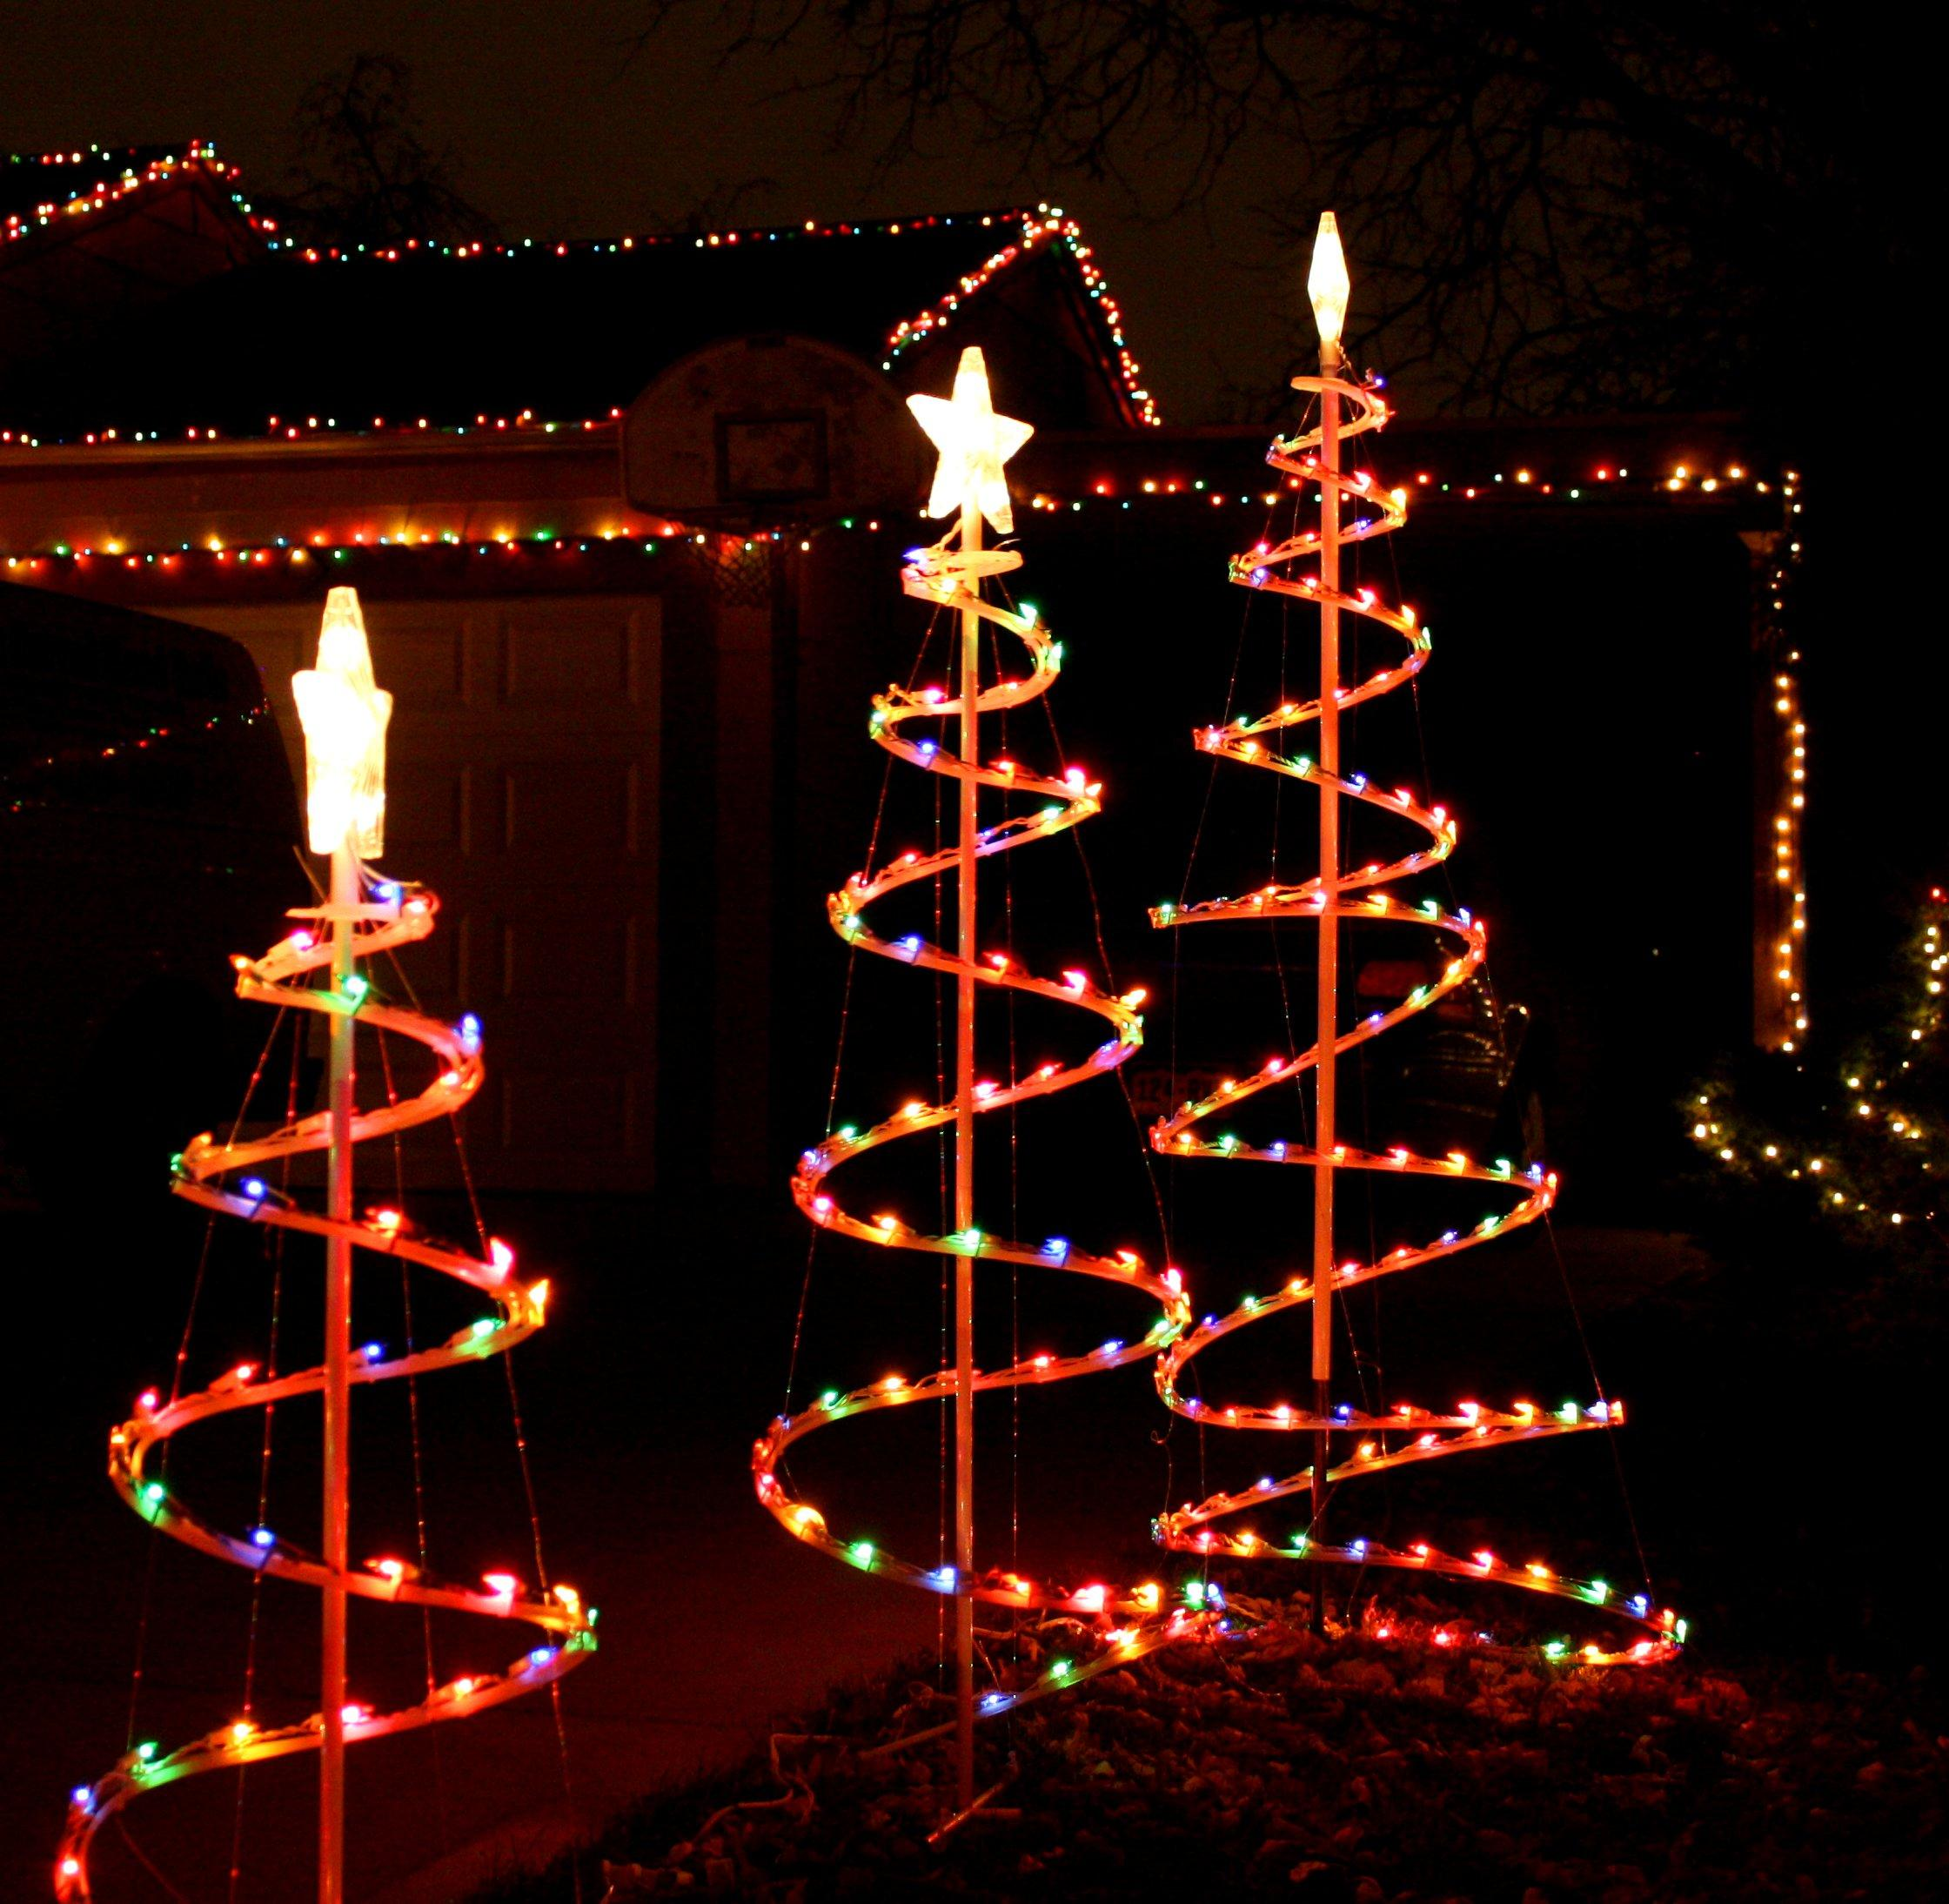 Three winding spirals going around a central column, covered in Christmas lights